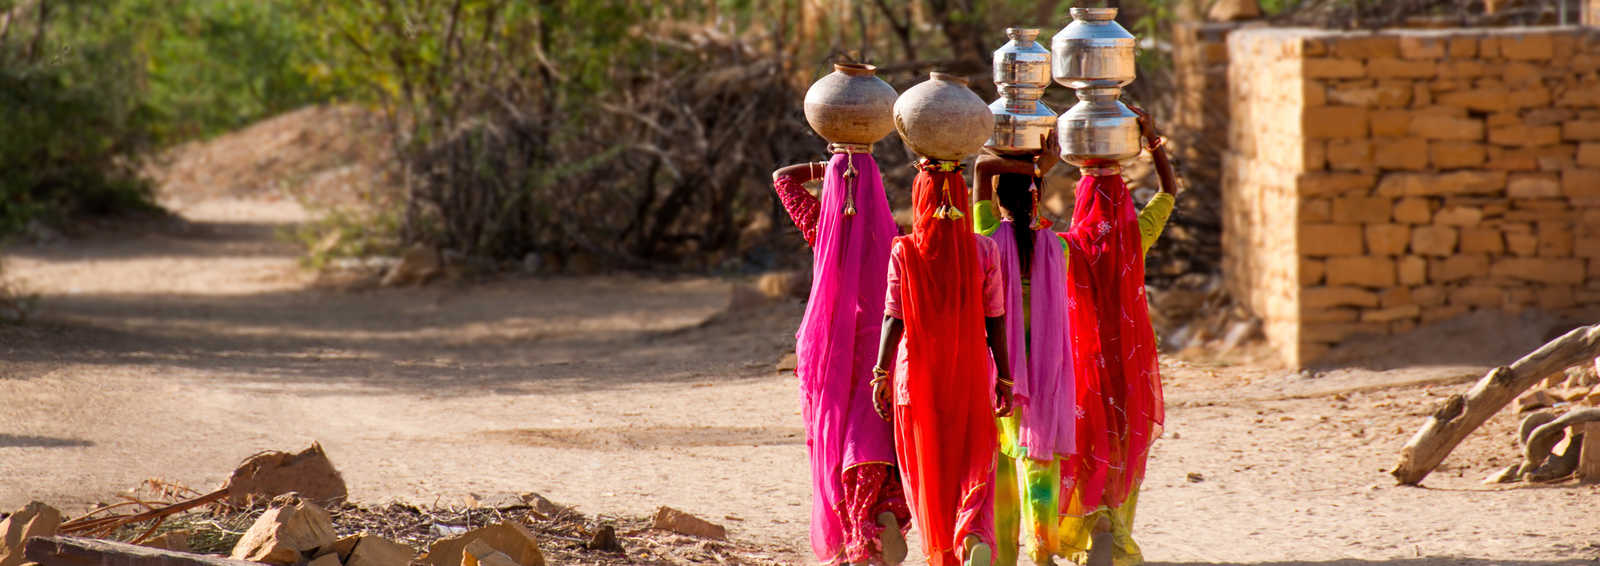 Carrying water home, Jailsalmer, Rajasthan